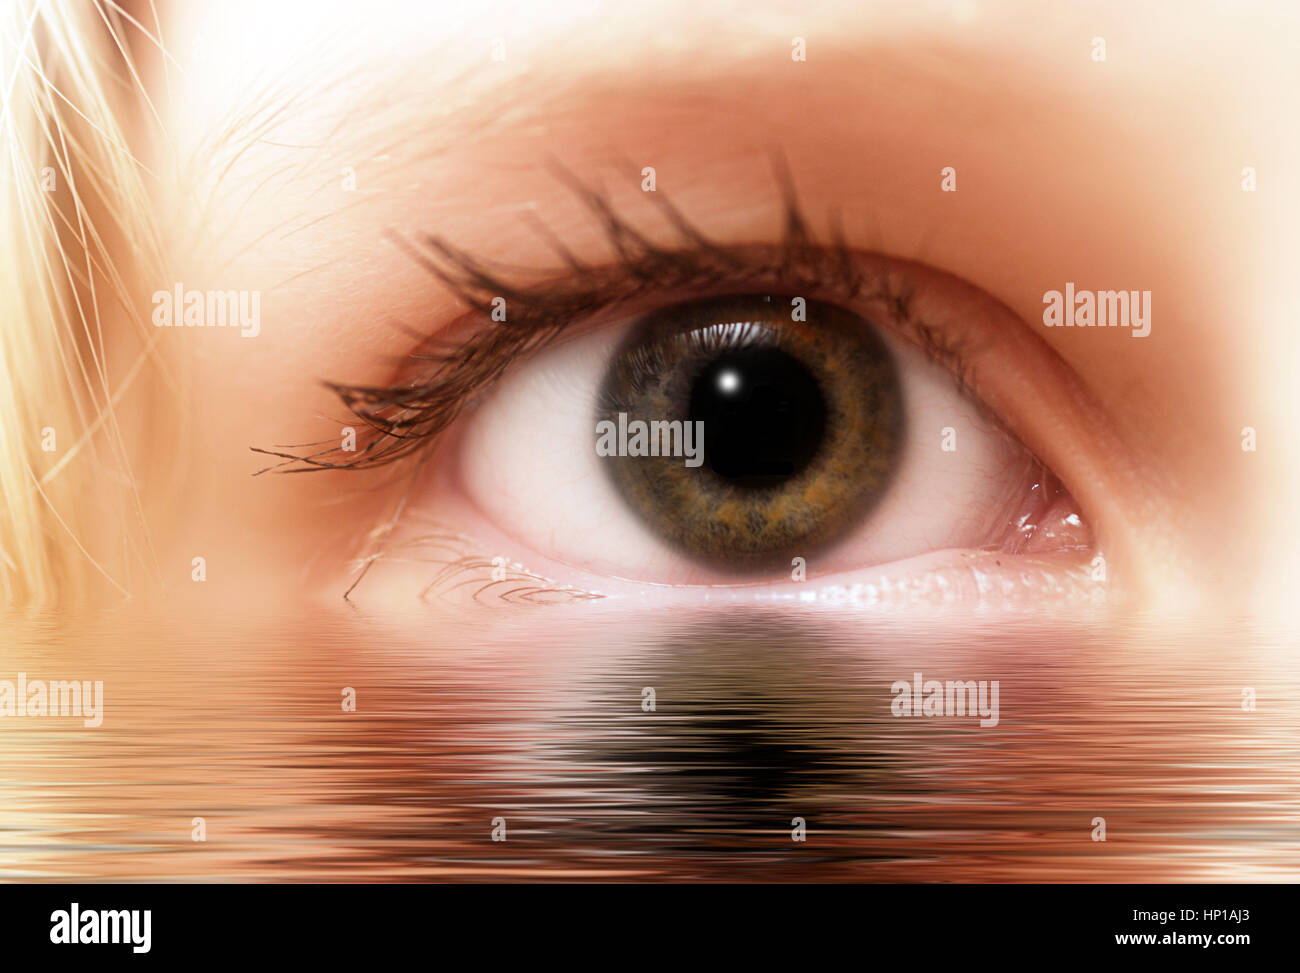 girl eye with reflection in water - Stock Image